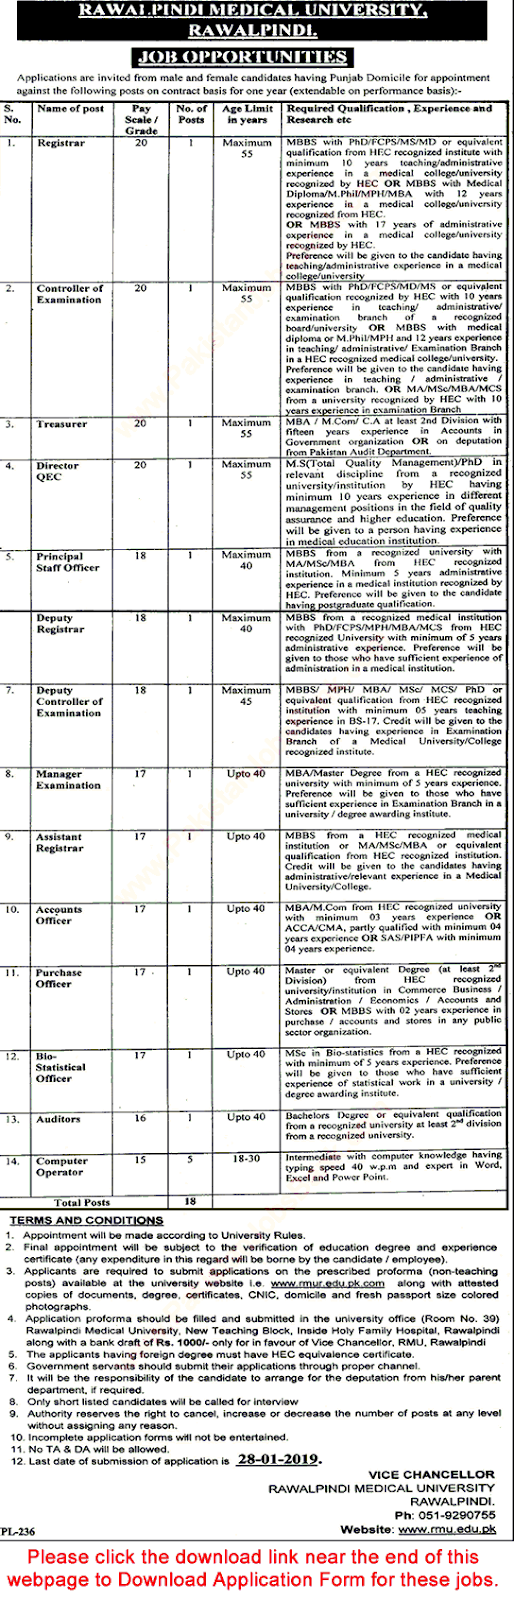 Rawalpindi Medical University jobs 2019